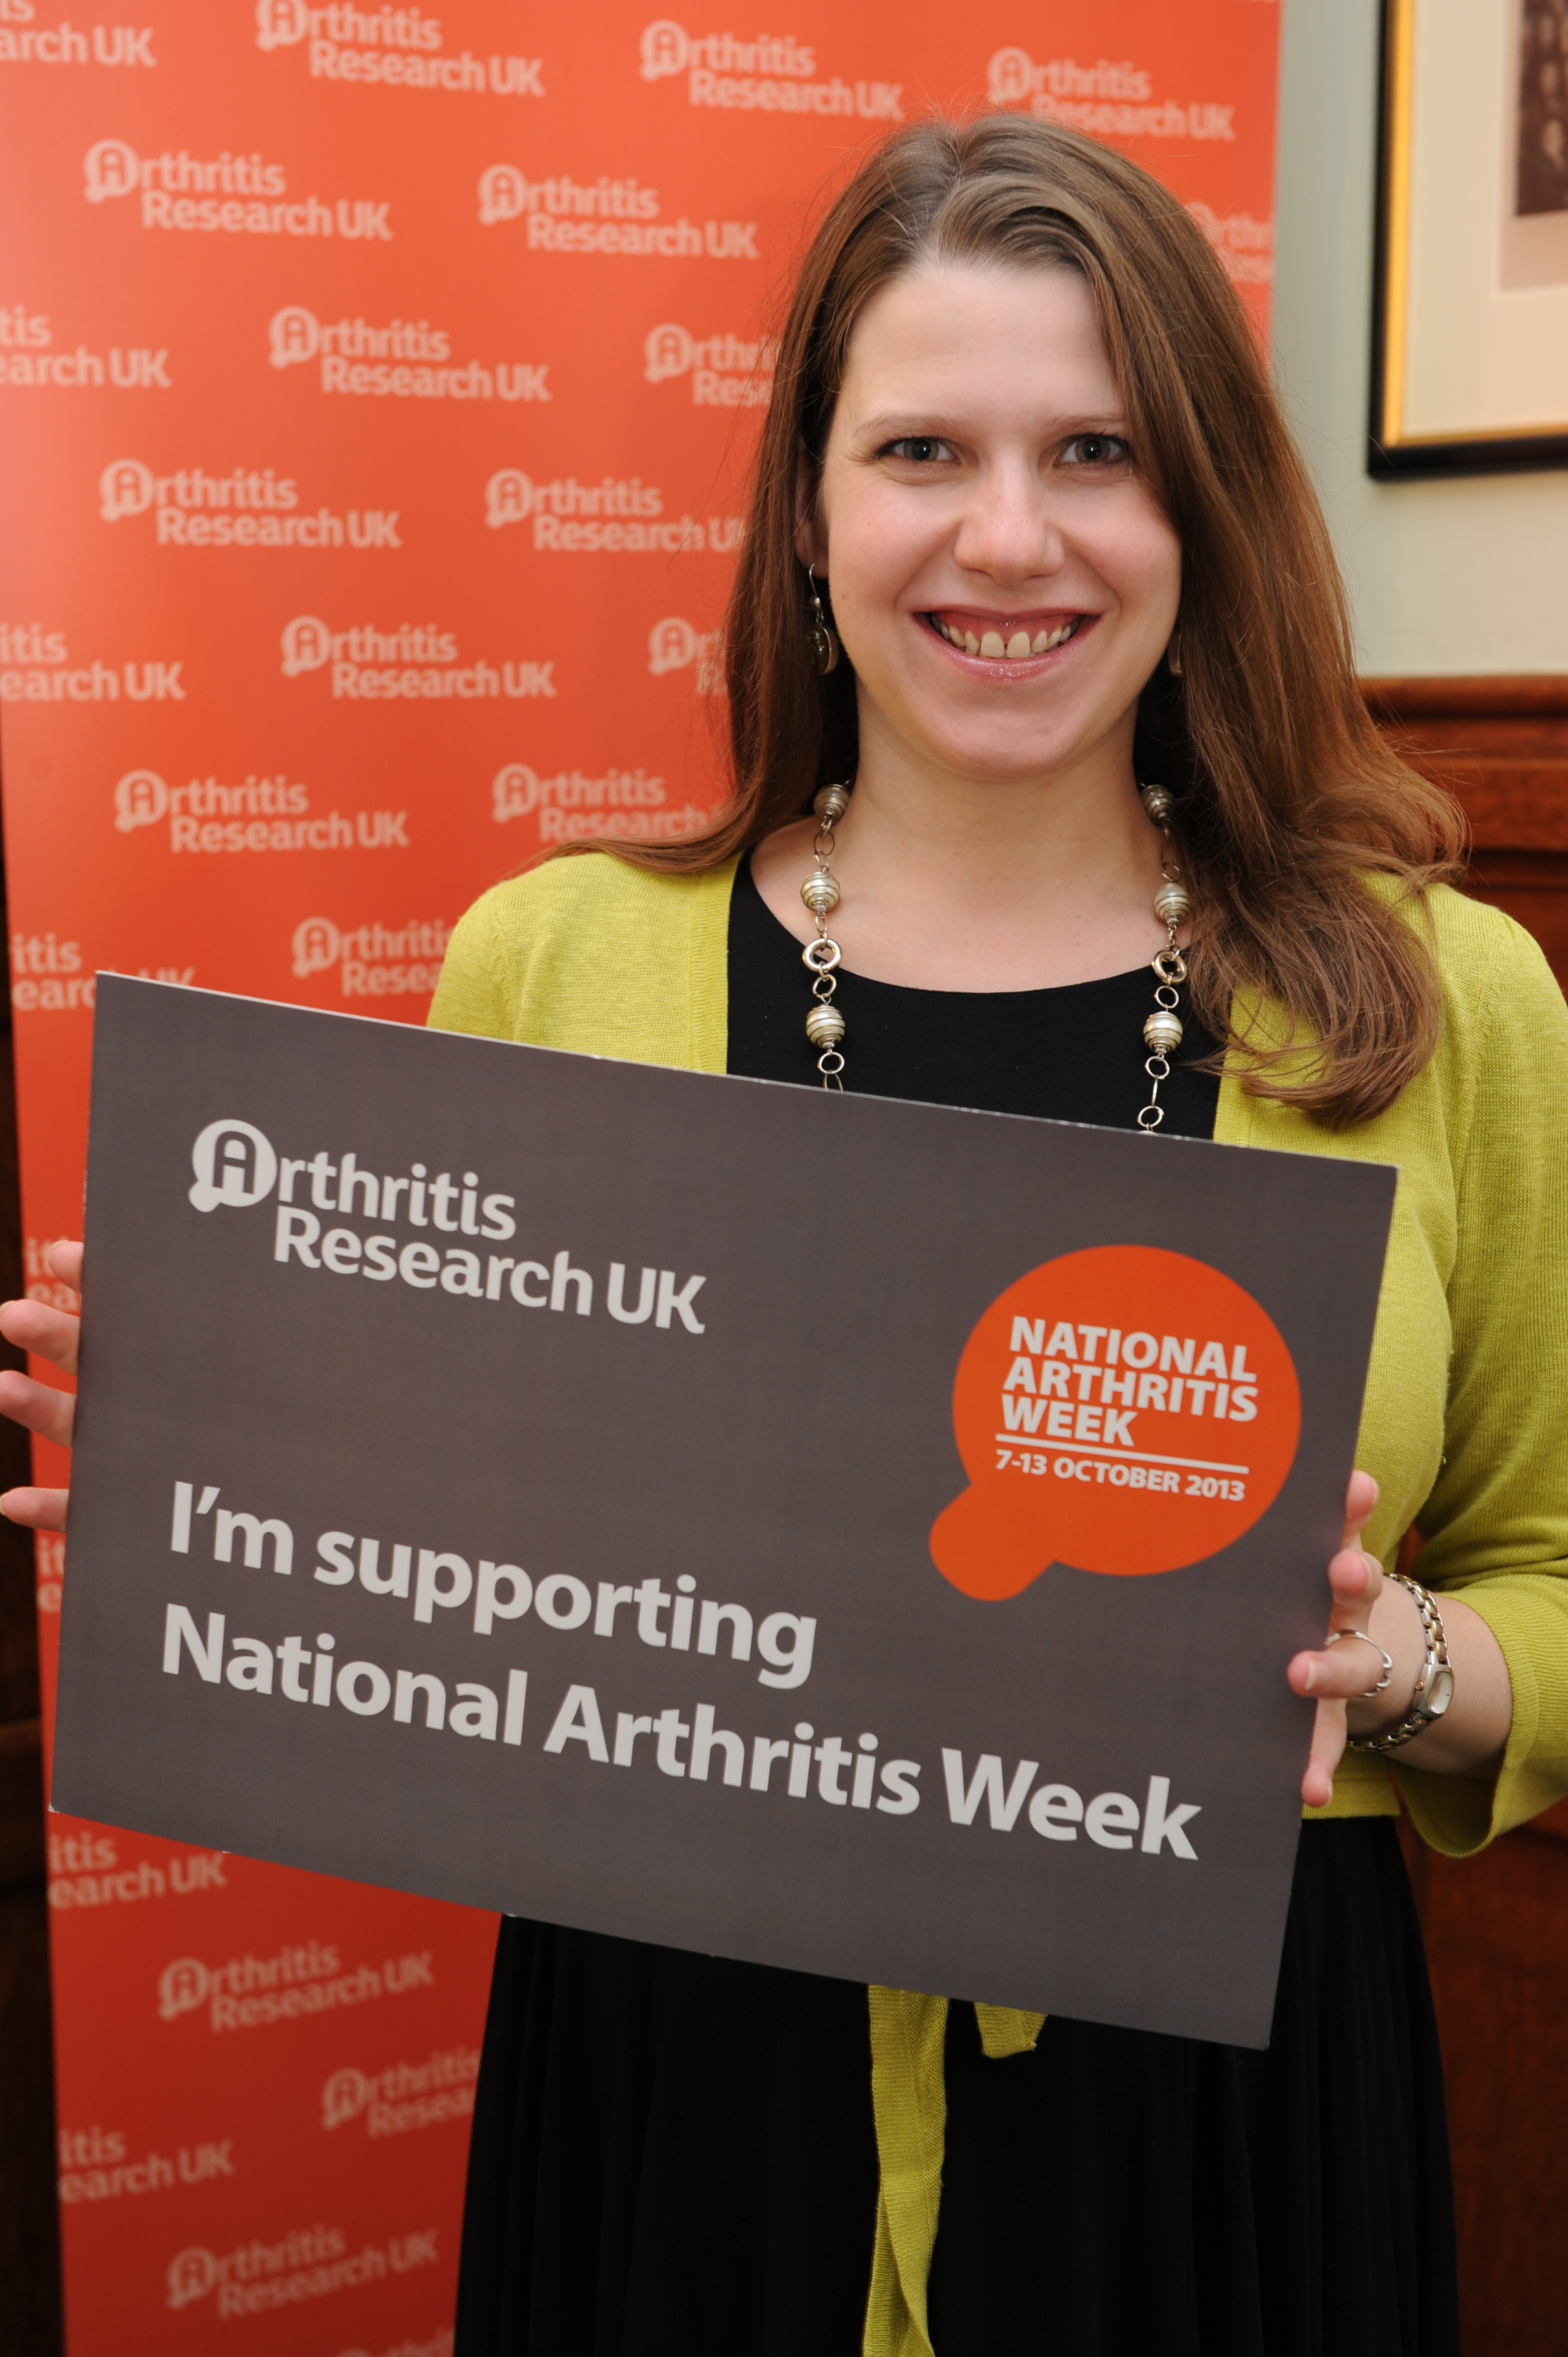 2013-10-09_Jo_Swinson_MP_National_Arthritis_Week.jpg